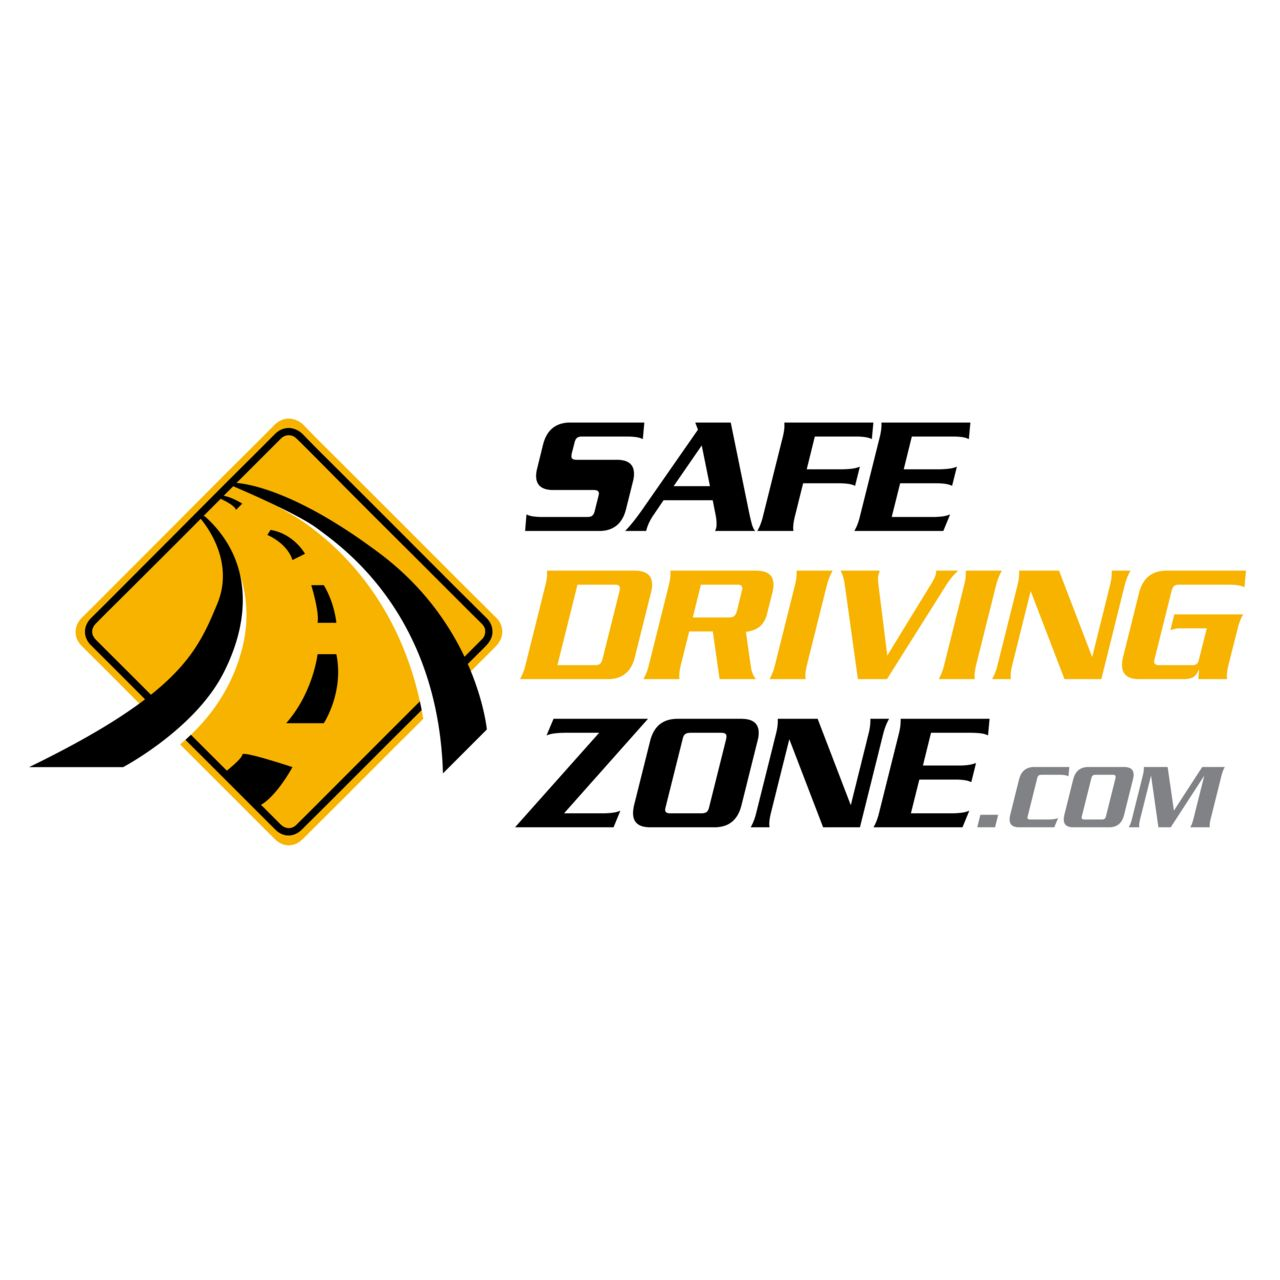 safe driving zone logo